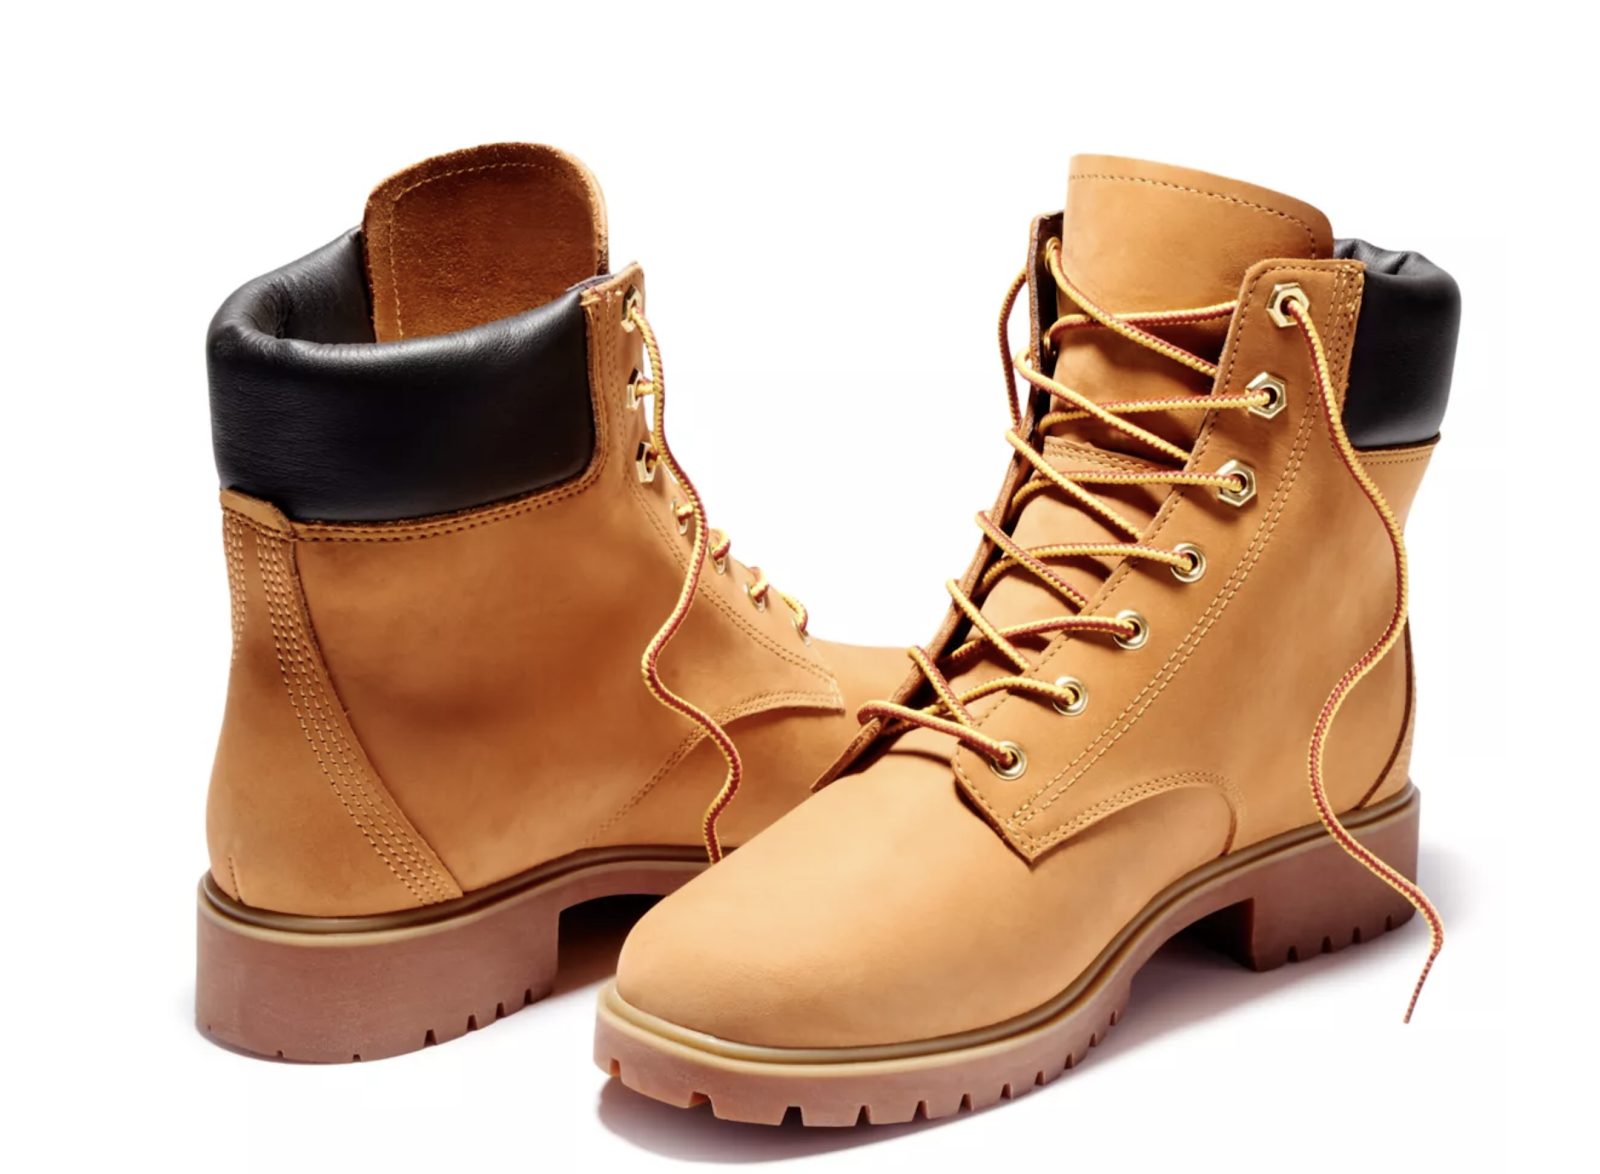 Timberland Jayne Waterproof 6 Inch Leather Work Boots